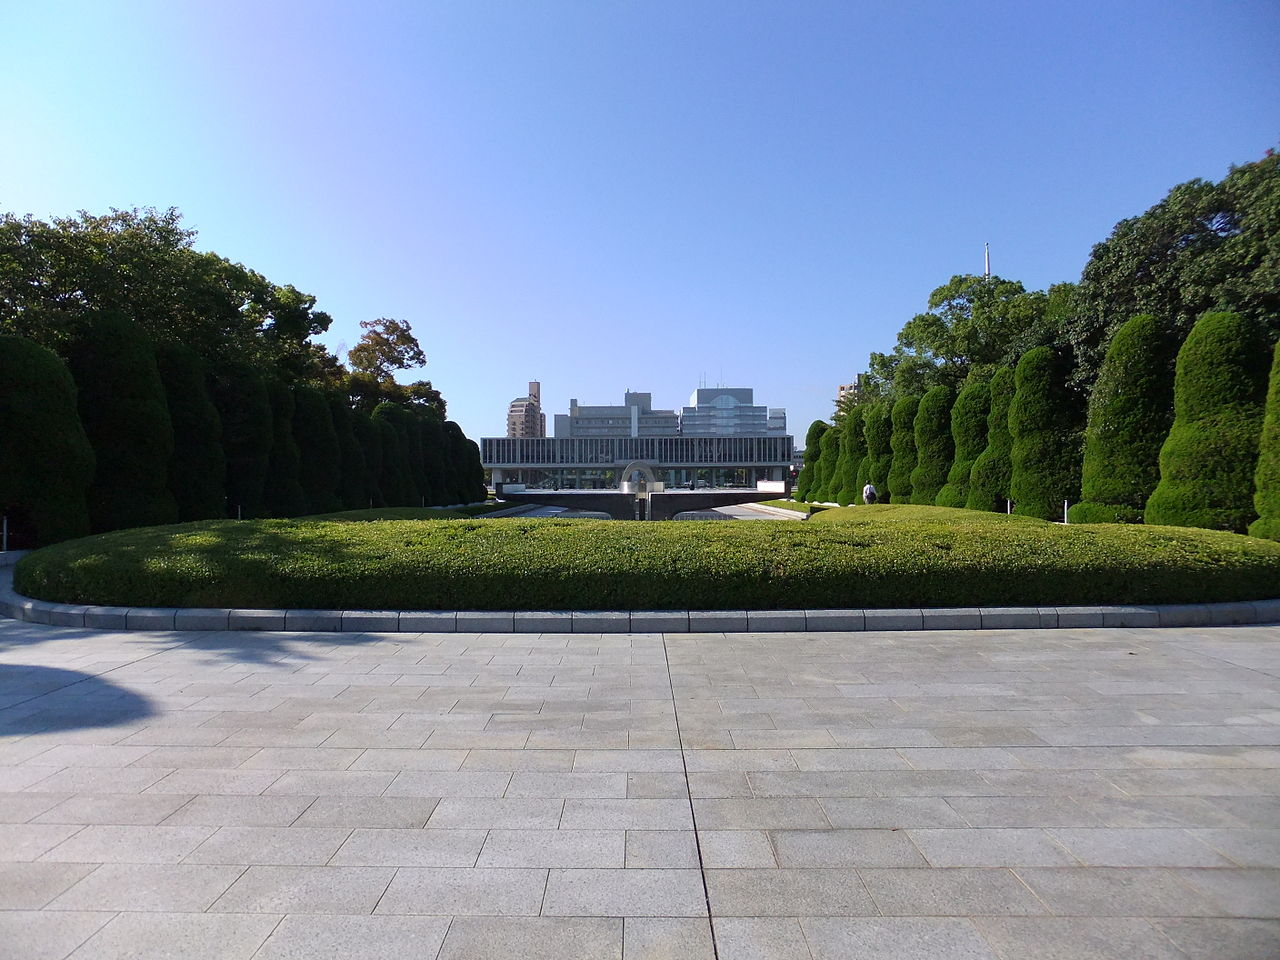 Hiroshima Peace Park and Memorial Museum. Photo by Taisyo, Wikimedia Commons.